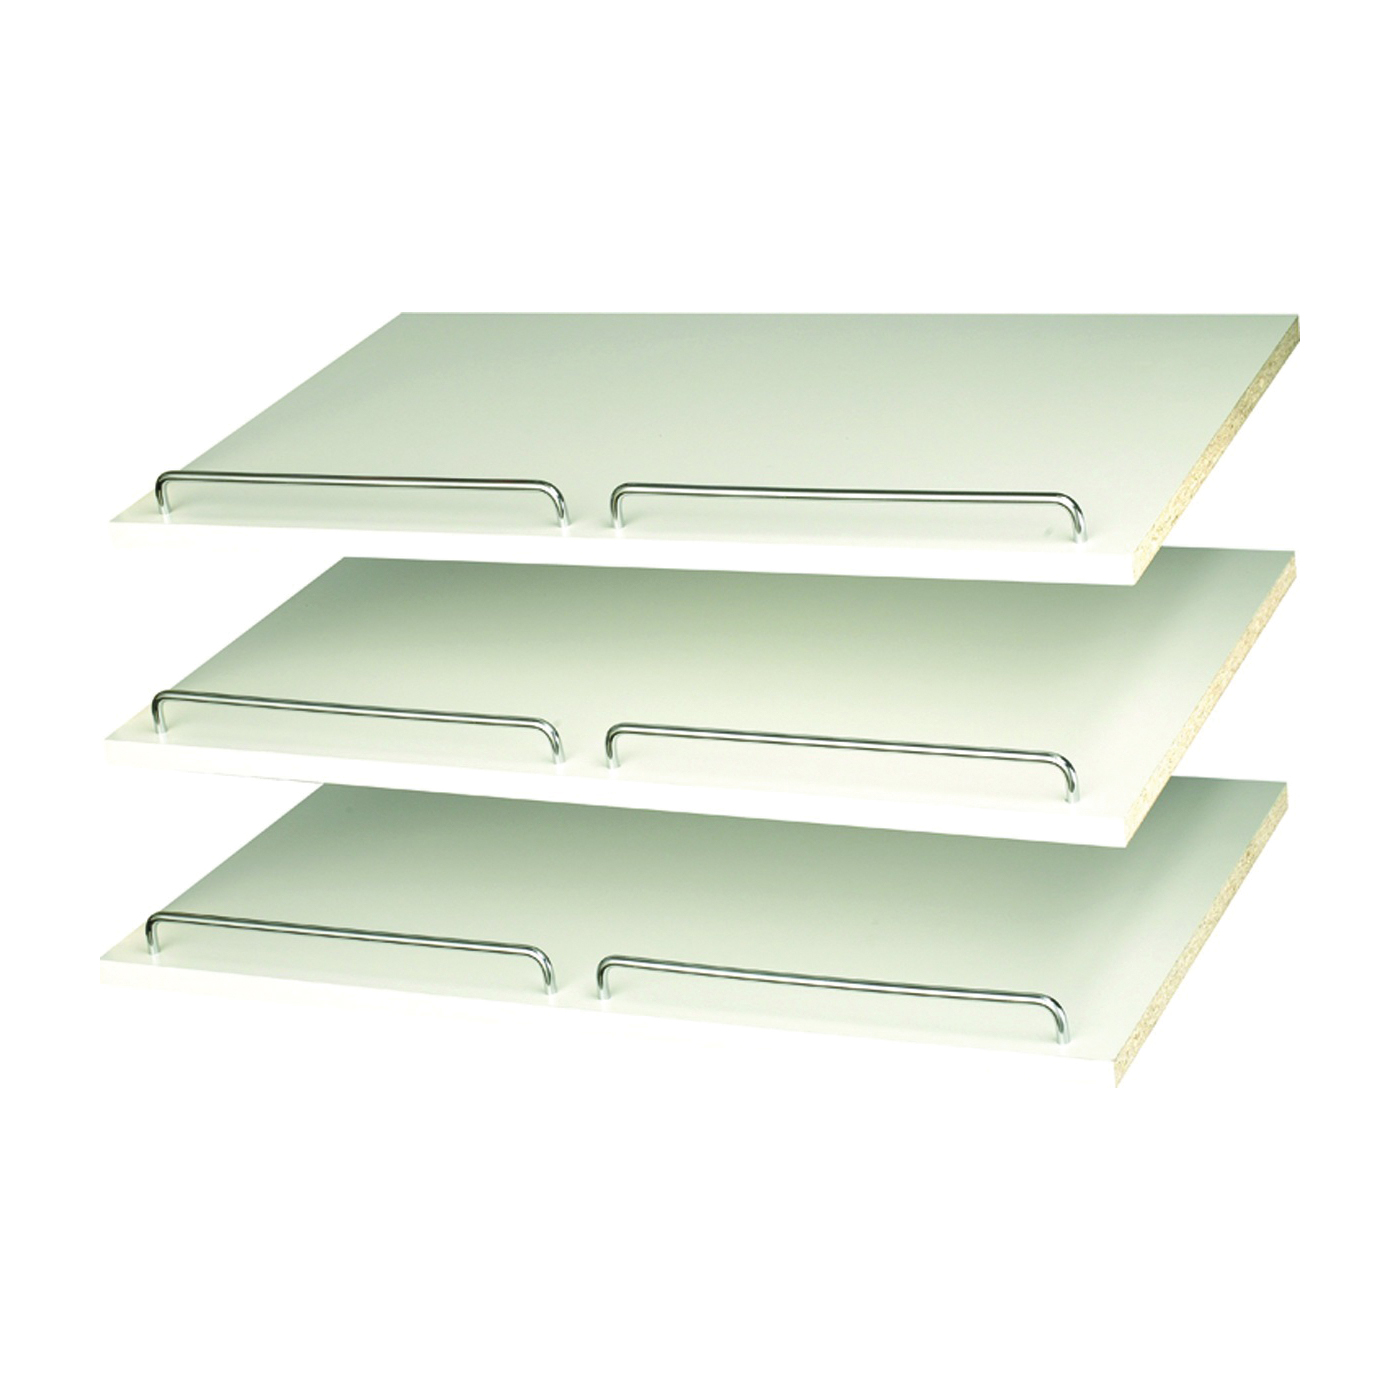 Picture of Easy Track RS1600 Shoe Shelf with Rail, 3-Shelf, 24 in W